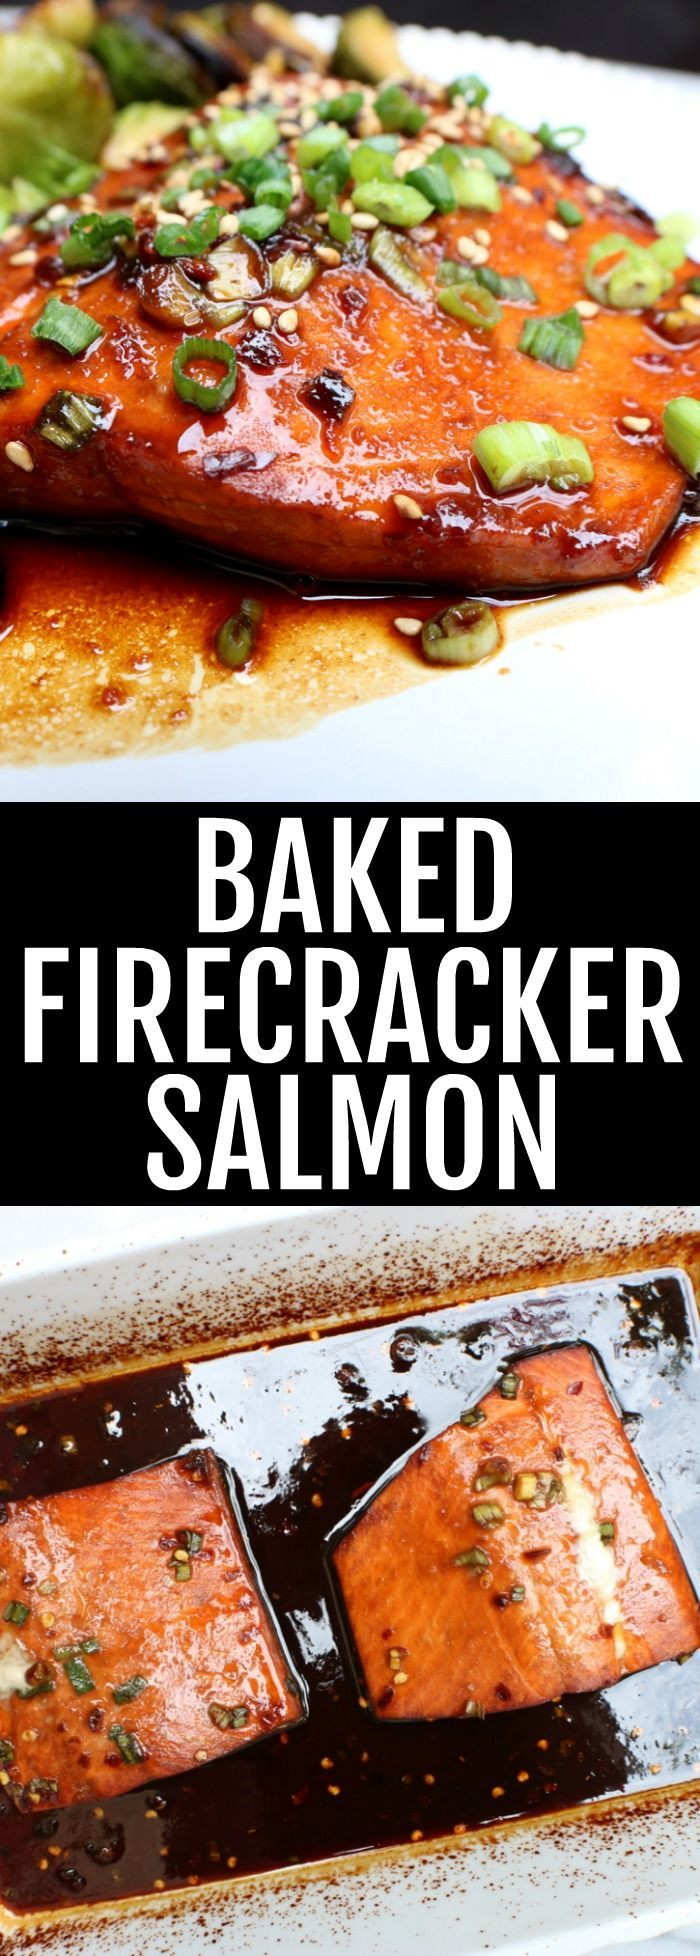 You'll love this spicy marinated Baked Firecracker Salmon!! Such a delicious and fiery fish dinner, perfect for any weeknight meal or date night! thetoastedpinenut.com #lowcarb #glutenfree #salmon #fish #dinner #seafood